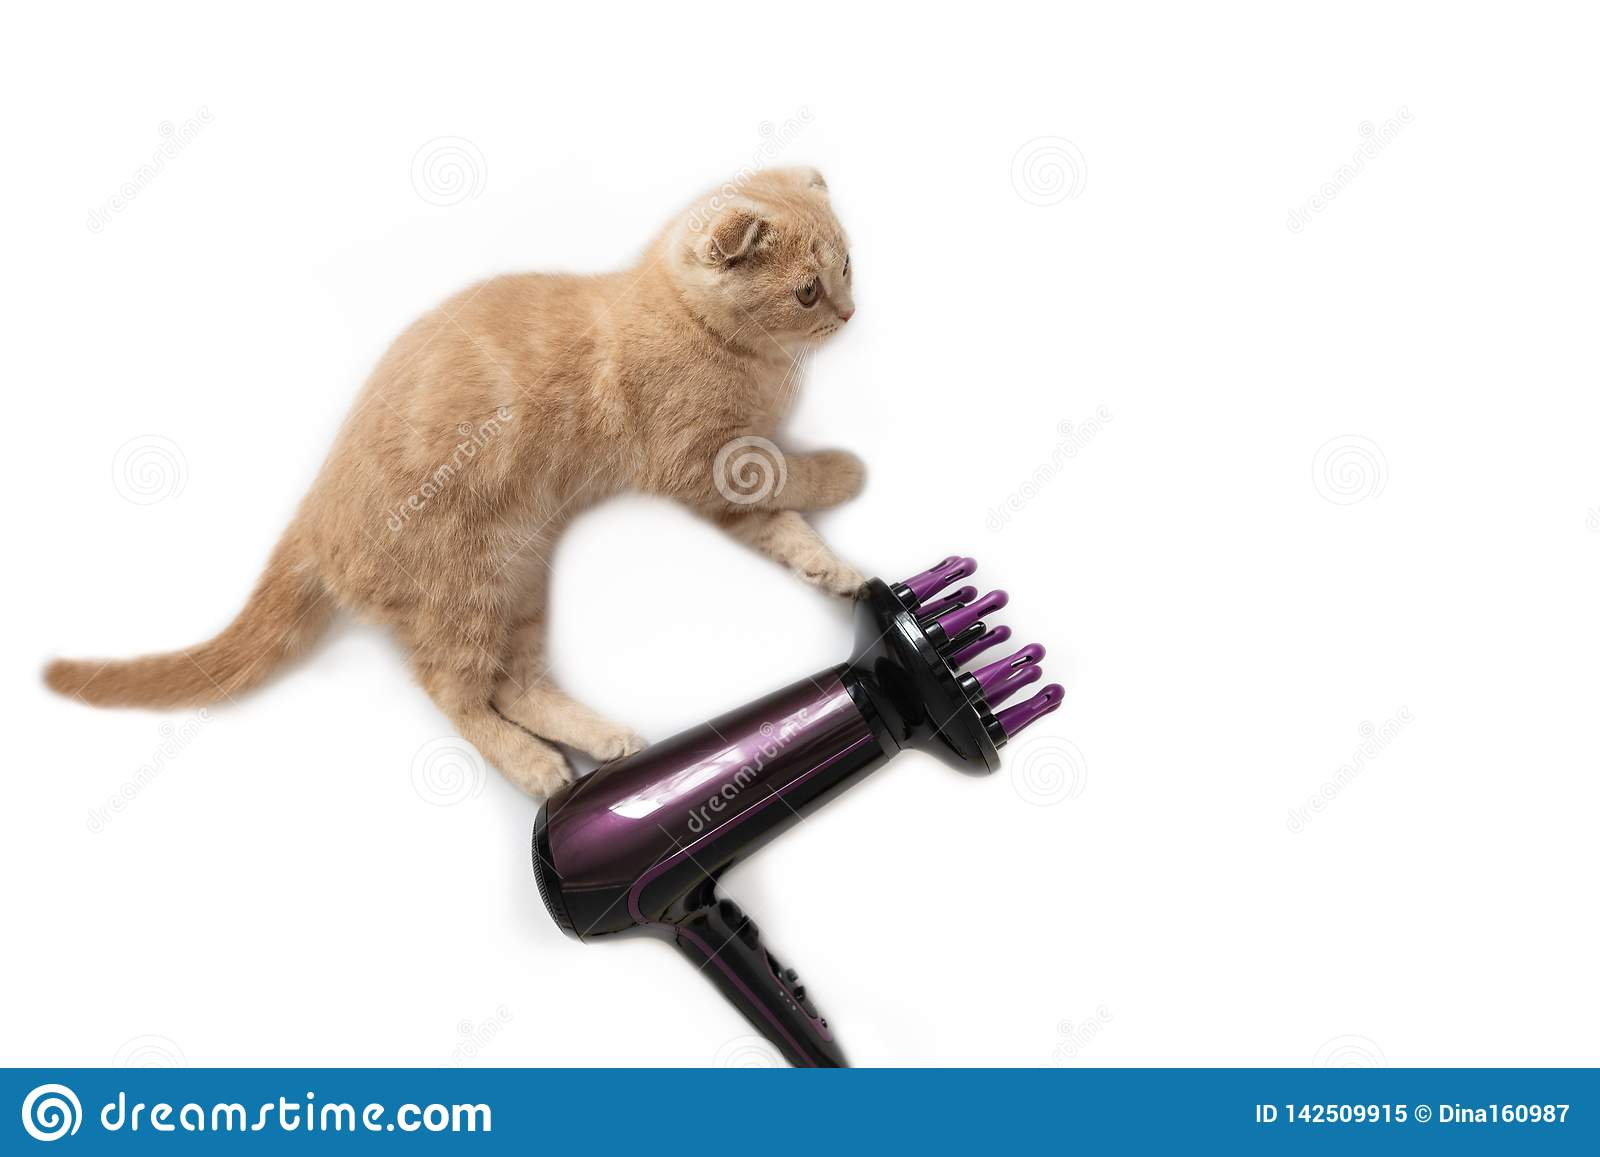 Funny cat hairstylist with hair dryer, isolated on white background. Copy space. Holiday card creative concept, banner,